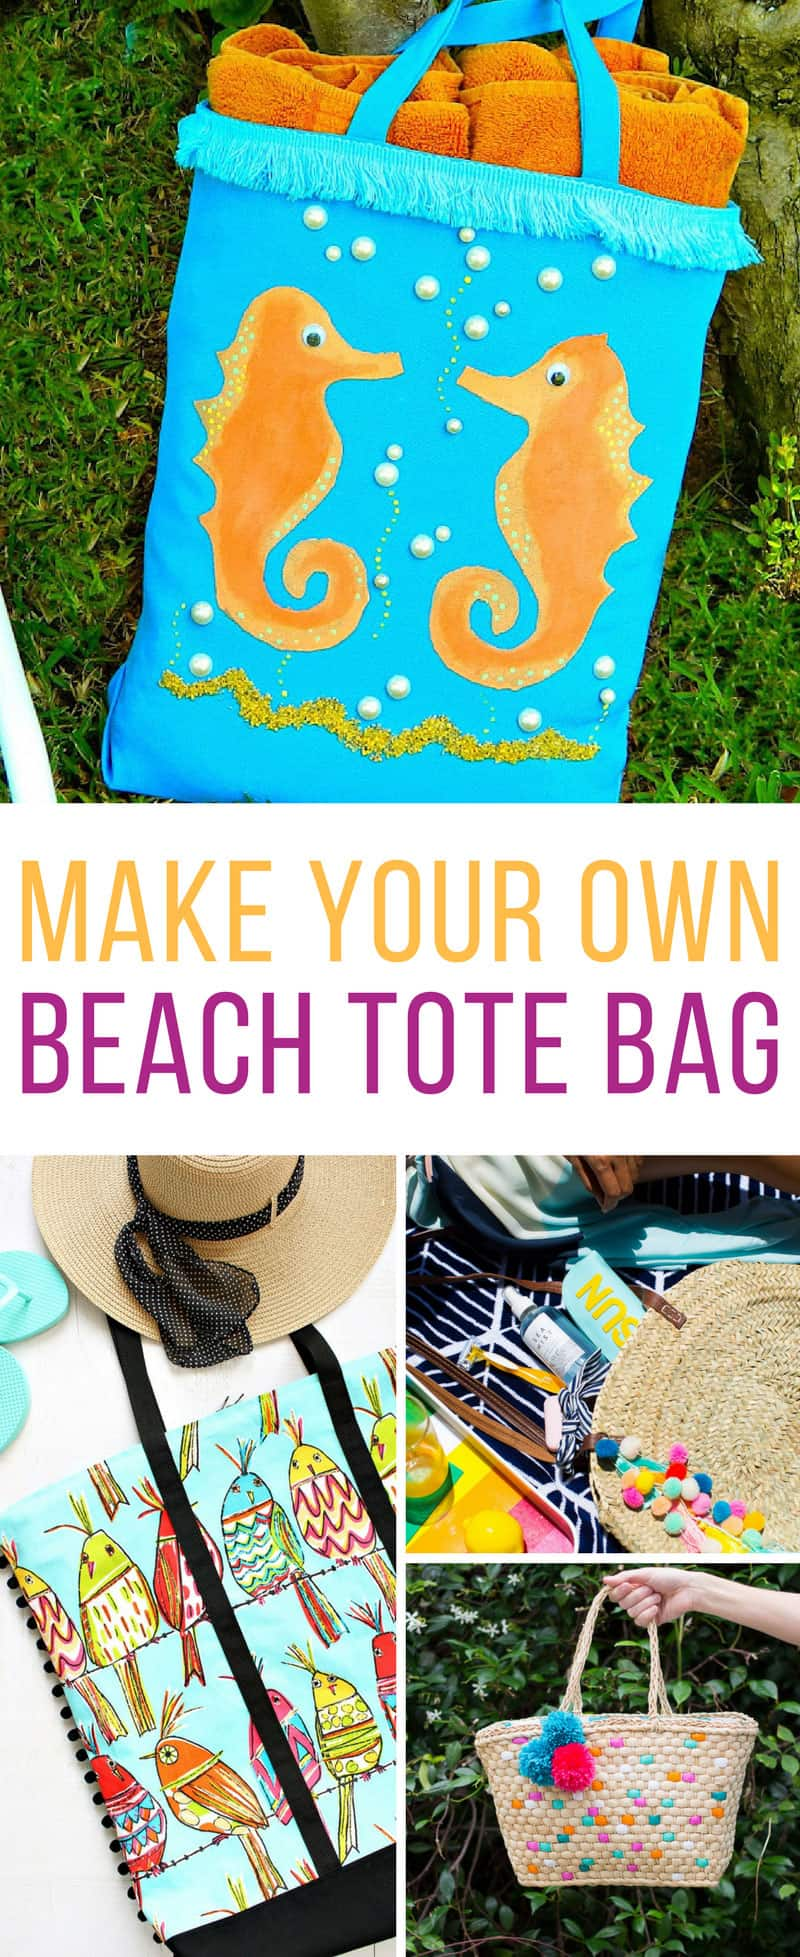 35 Fabulous Diy Beach Tote Bag Ideas For The Summer